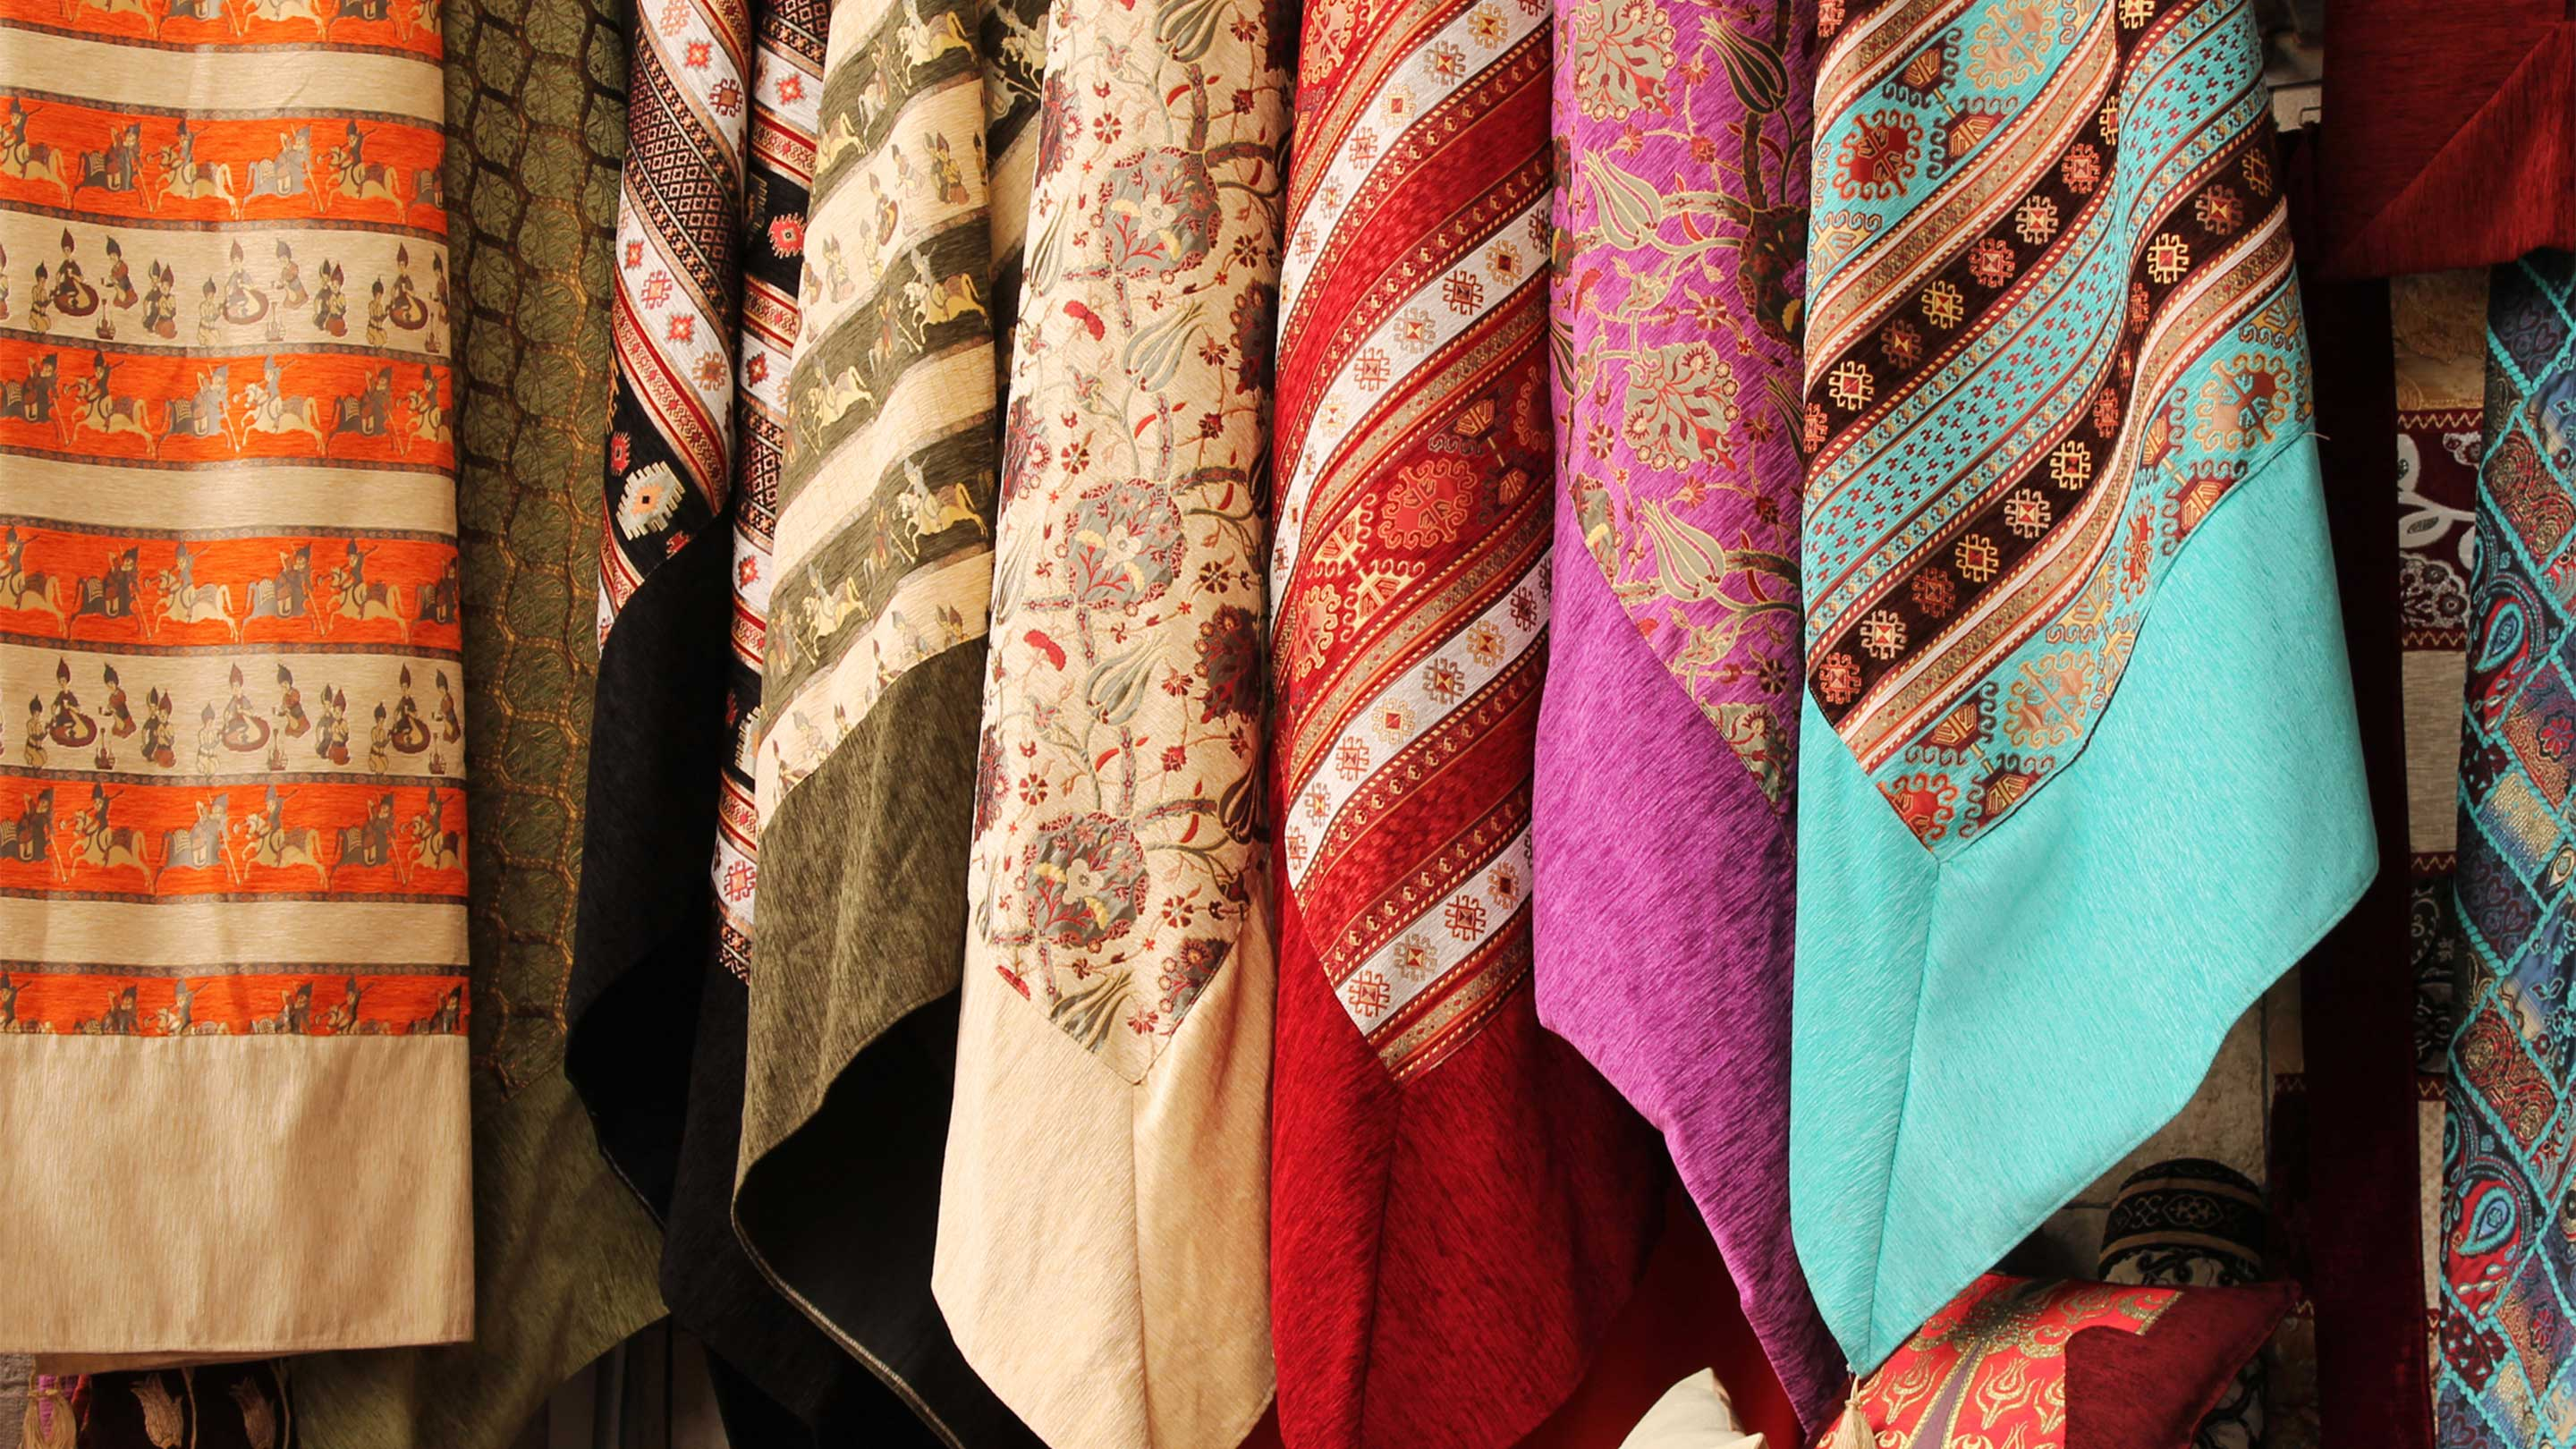 16-9 secret Headscarfs antique museum